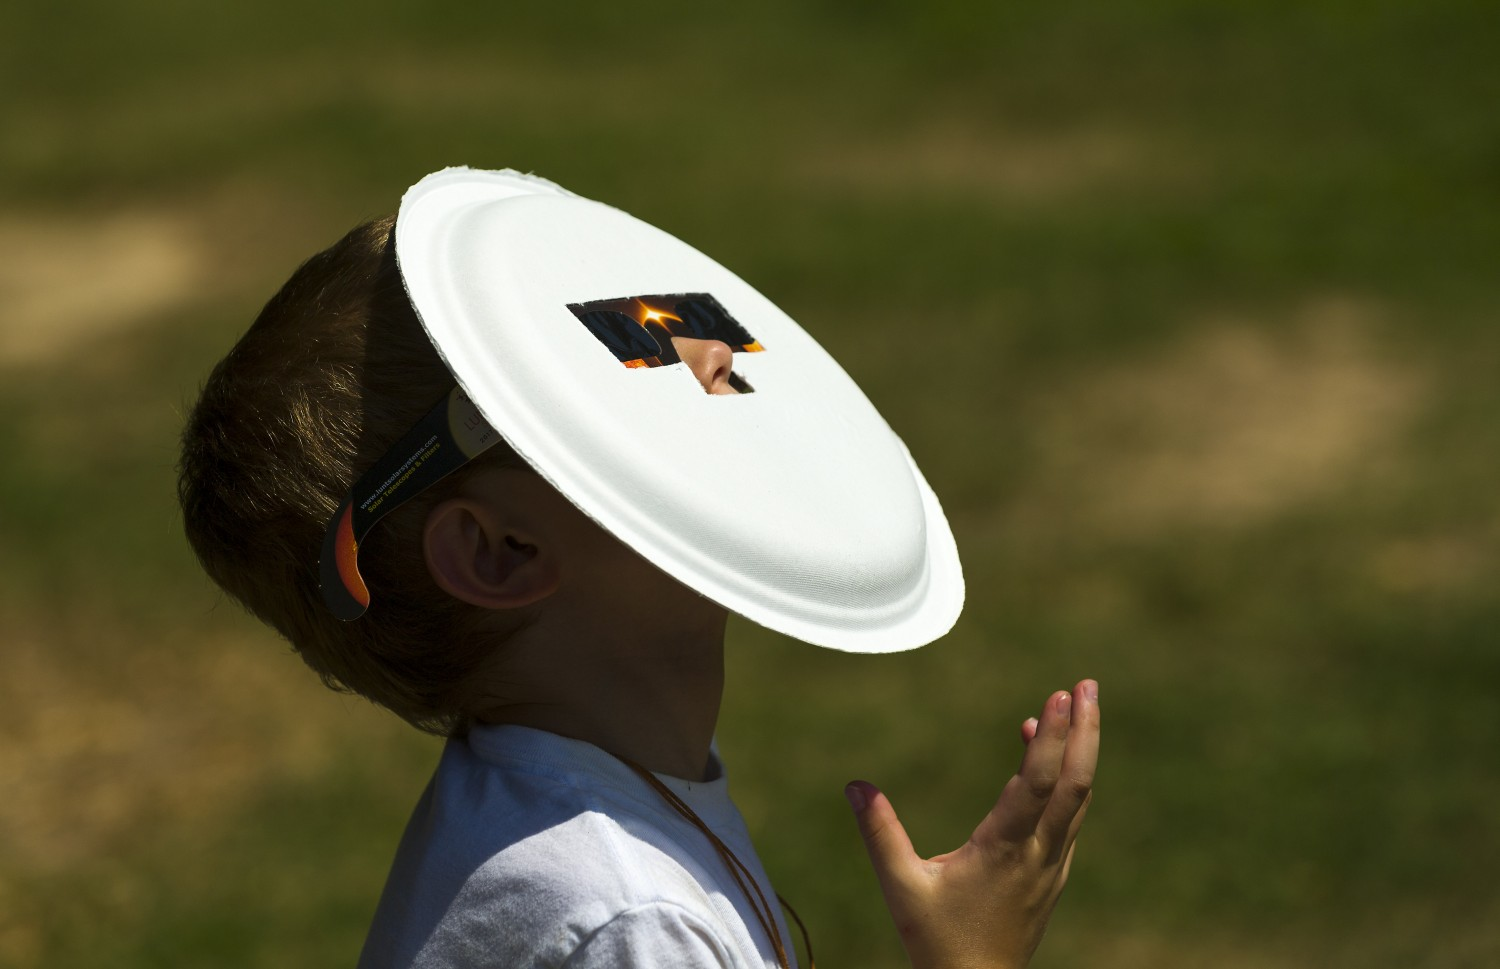 Eclipse glasses attached to a paper plate provided extra layer of safety.